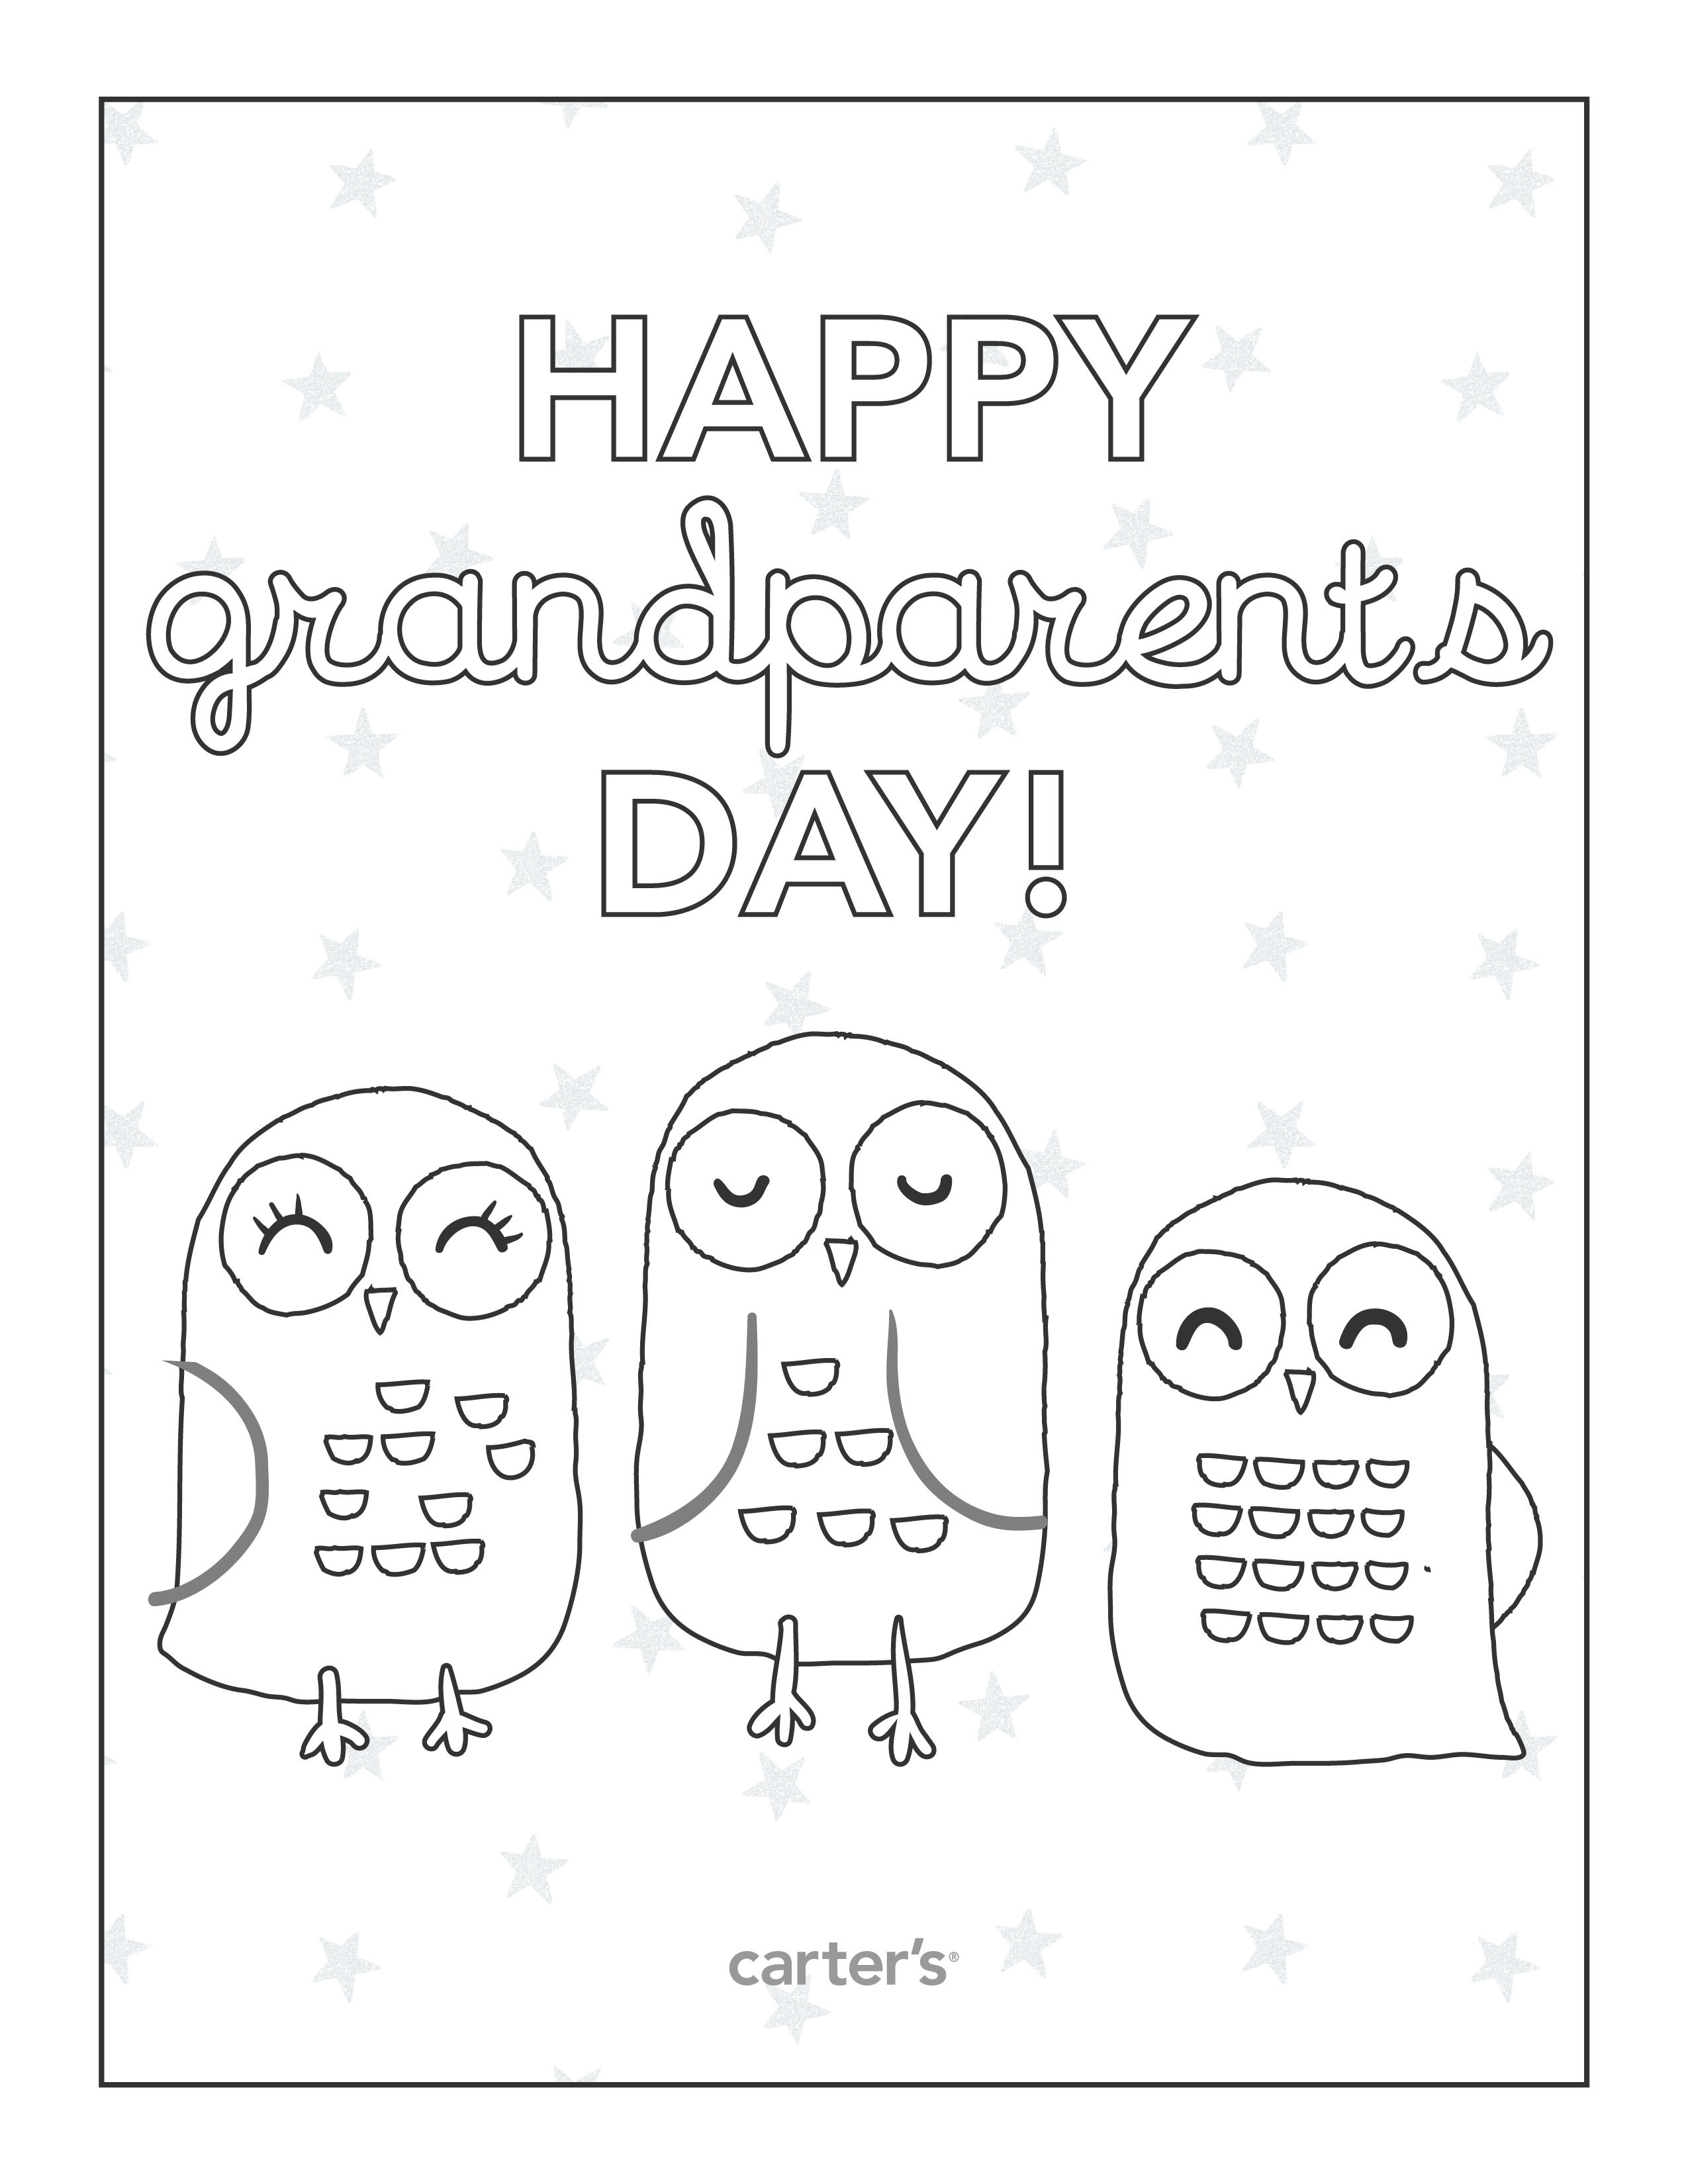 Free Printable Grandparents Day Coloring Pages From Carter's - Free Printable Fathers Day Coloring Pages For Grandpa